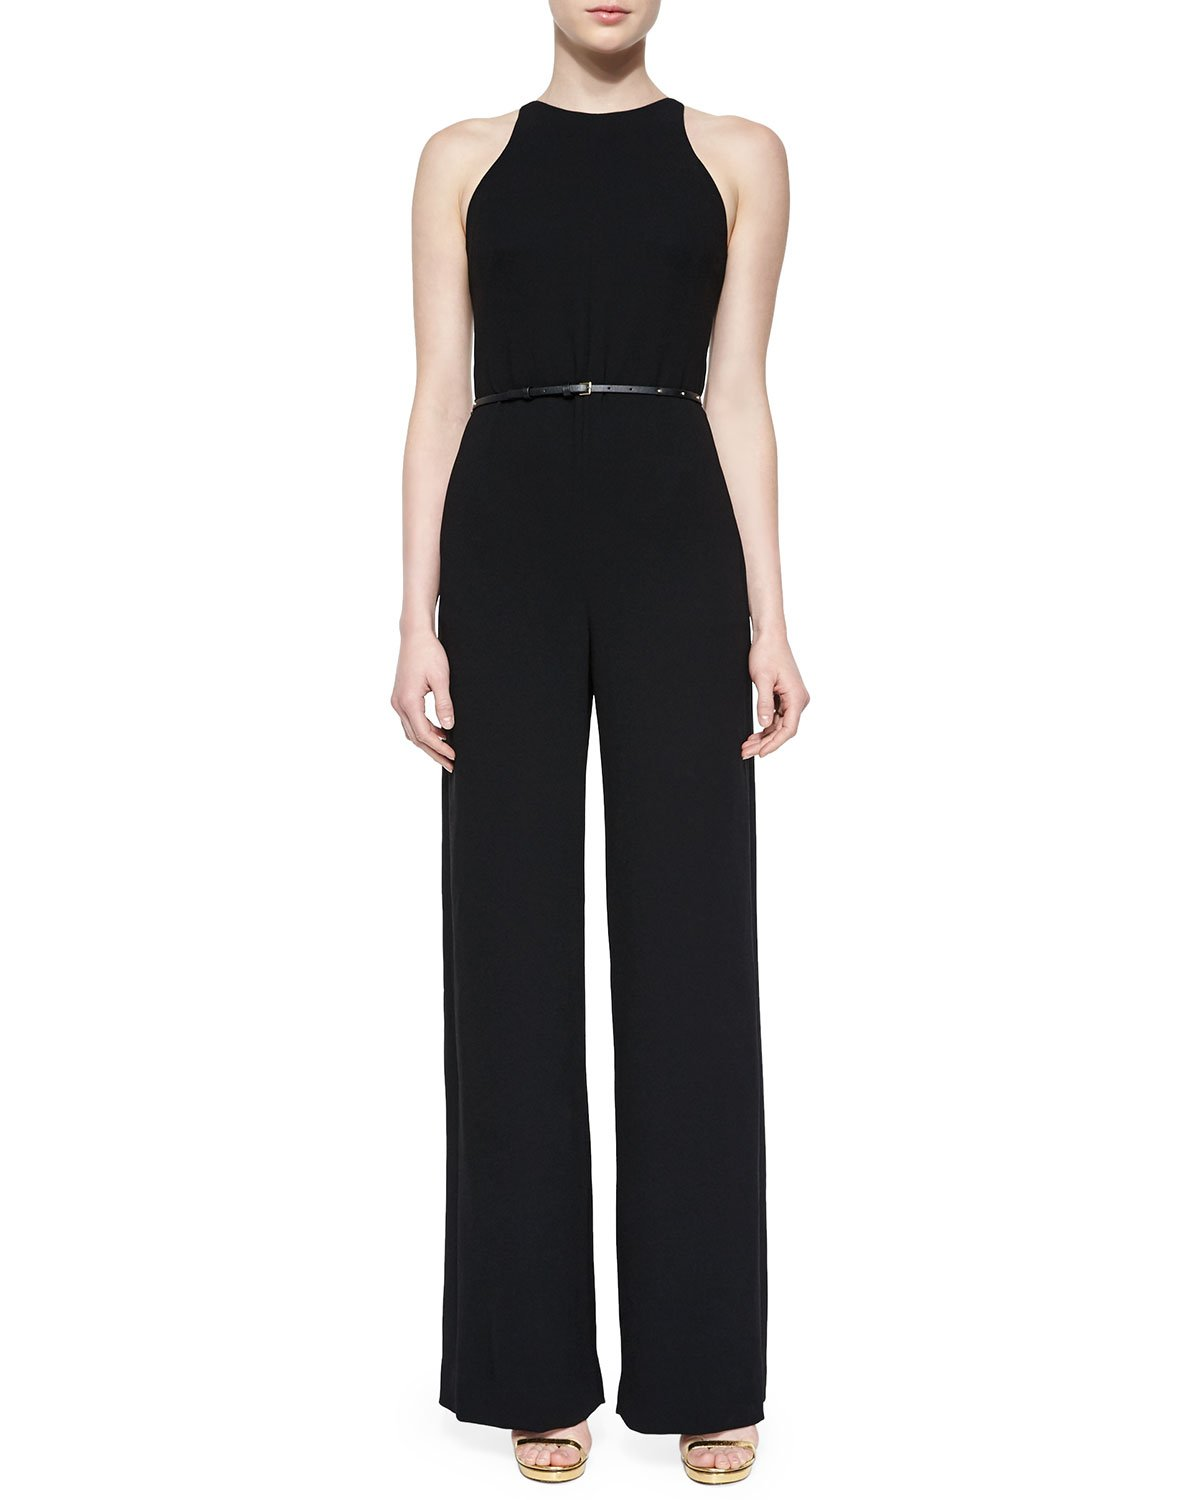 The Learning to Fly Black Jumpsuit is as fun as it is cute, adding adjustable halter ties to a sexy wrap bodice. Pocketed pants end in elastic cuffs/5(K).